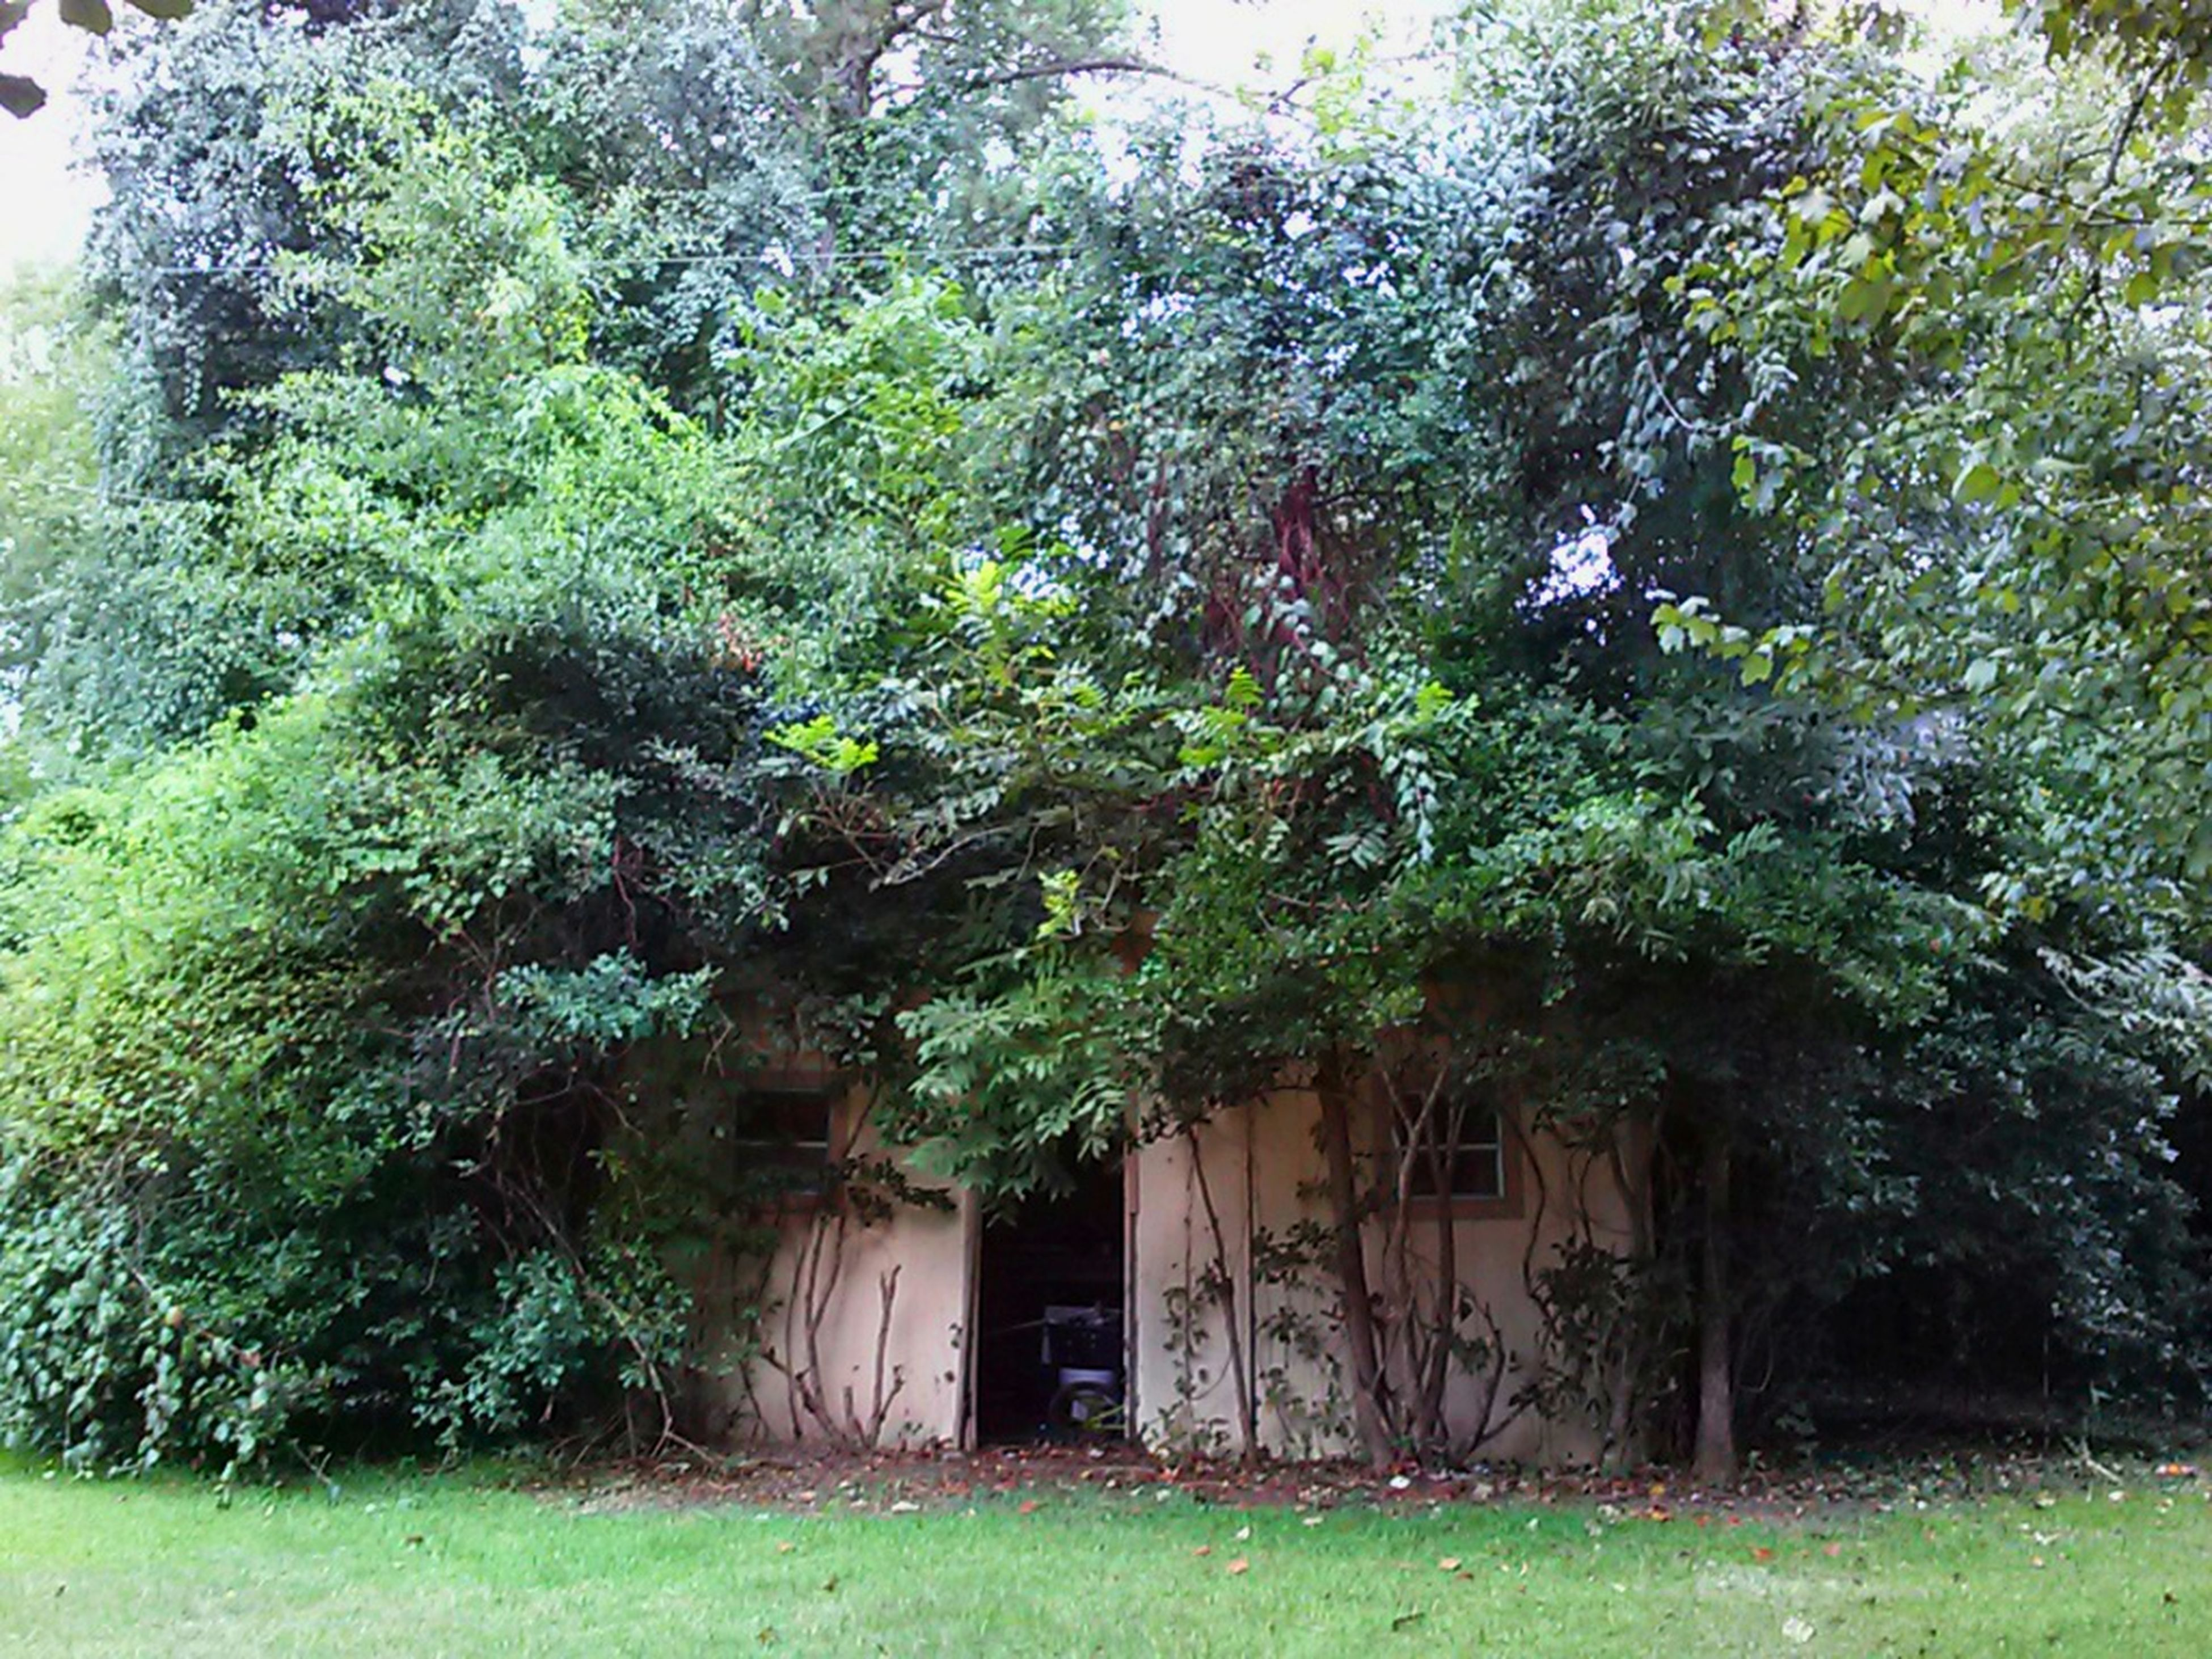 tree, built structure, green color, building exterior, growth, architecture, grass, house, plant, nature, field, day, outdoors, no people, green, tranquility, door, residential structure, ivy, grassy